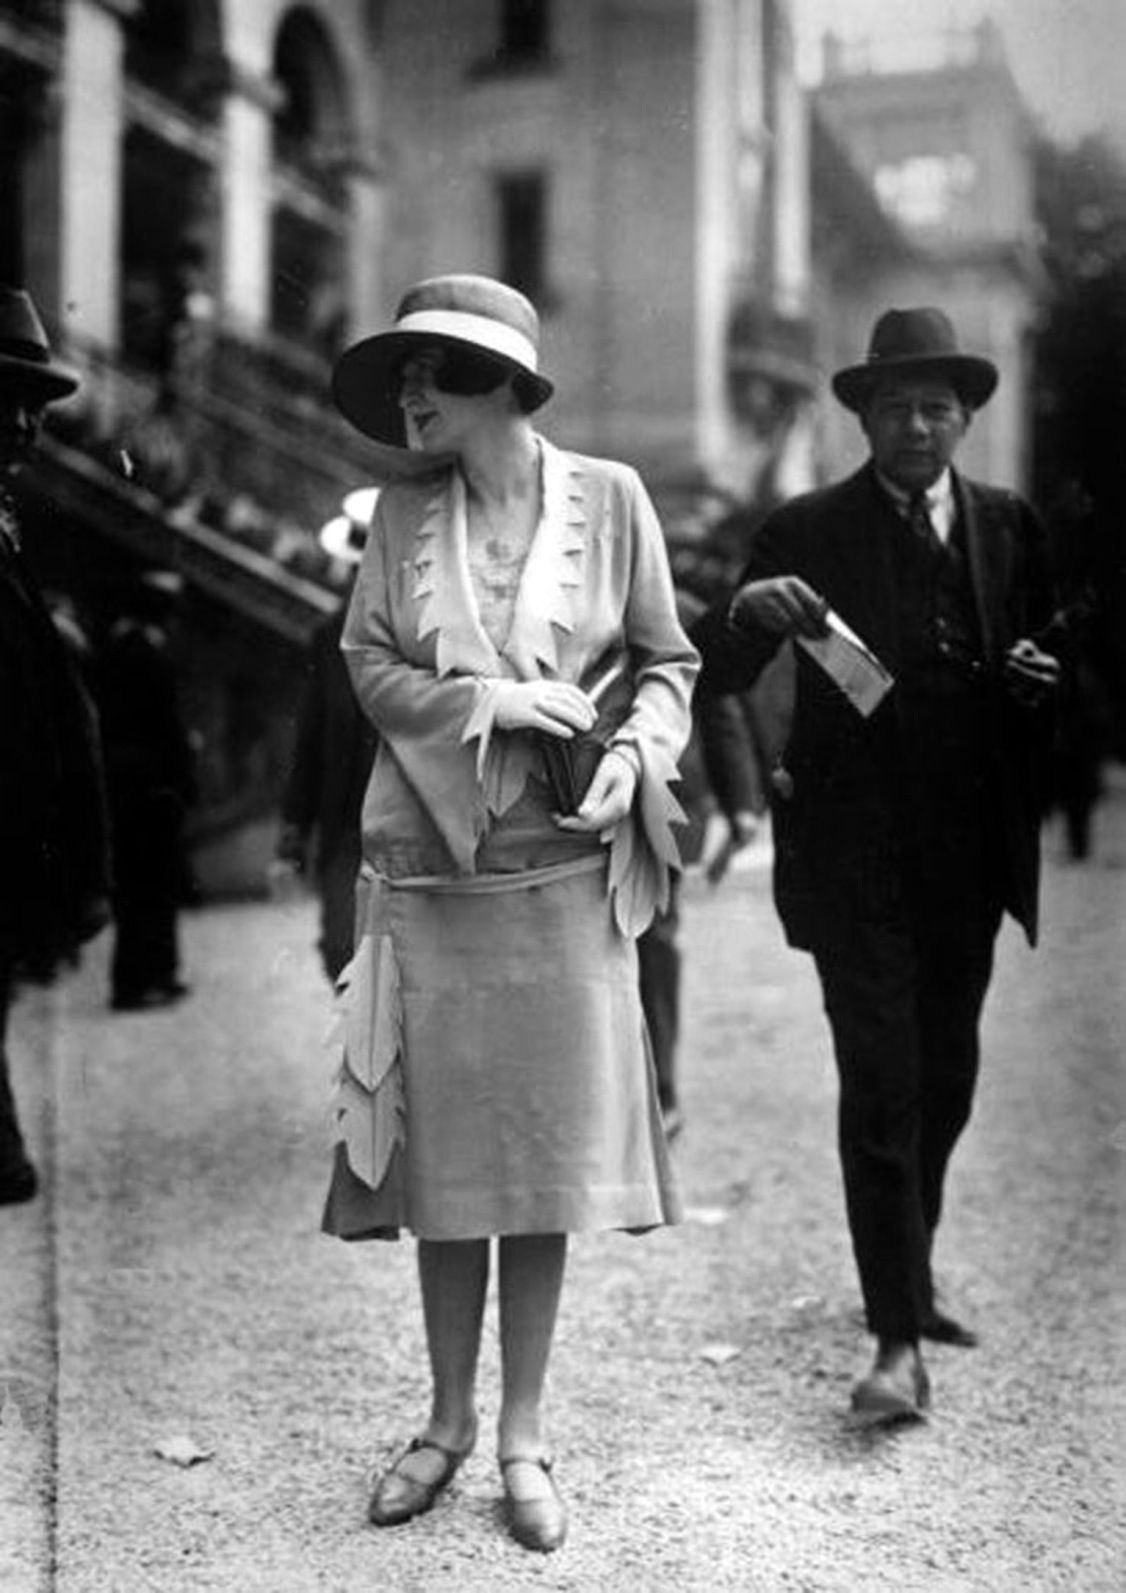 1921:  A woman models models the latest fashion of the day in a Paris street by Seeberger Freres on Getty Images.